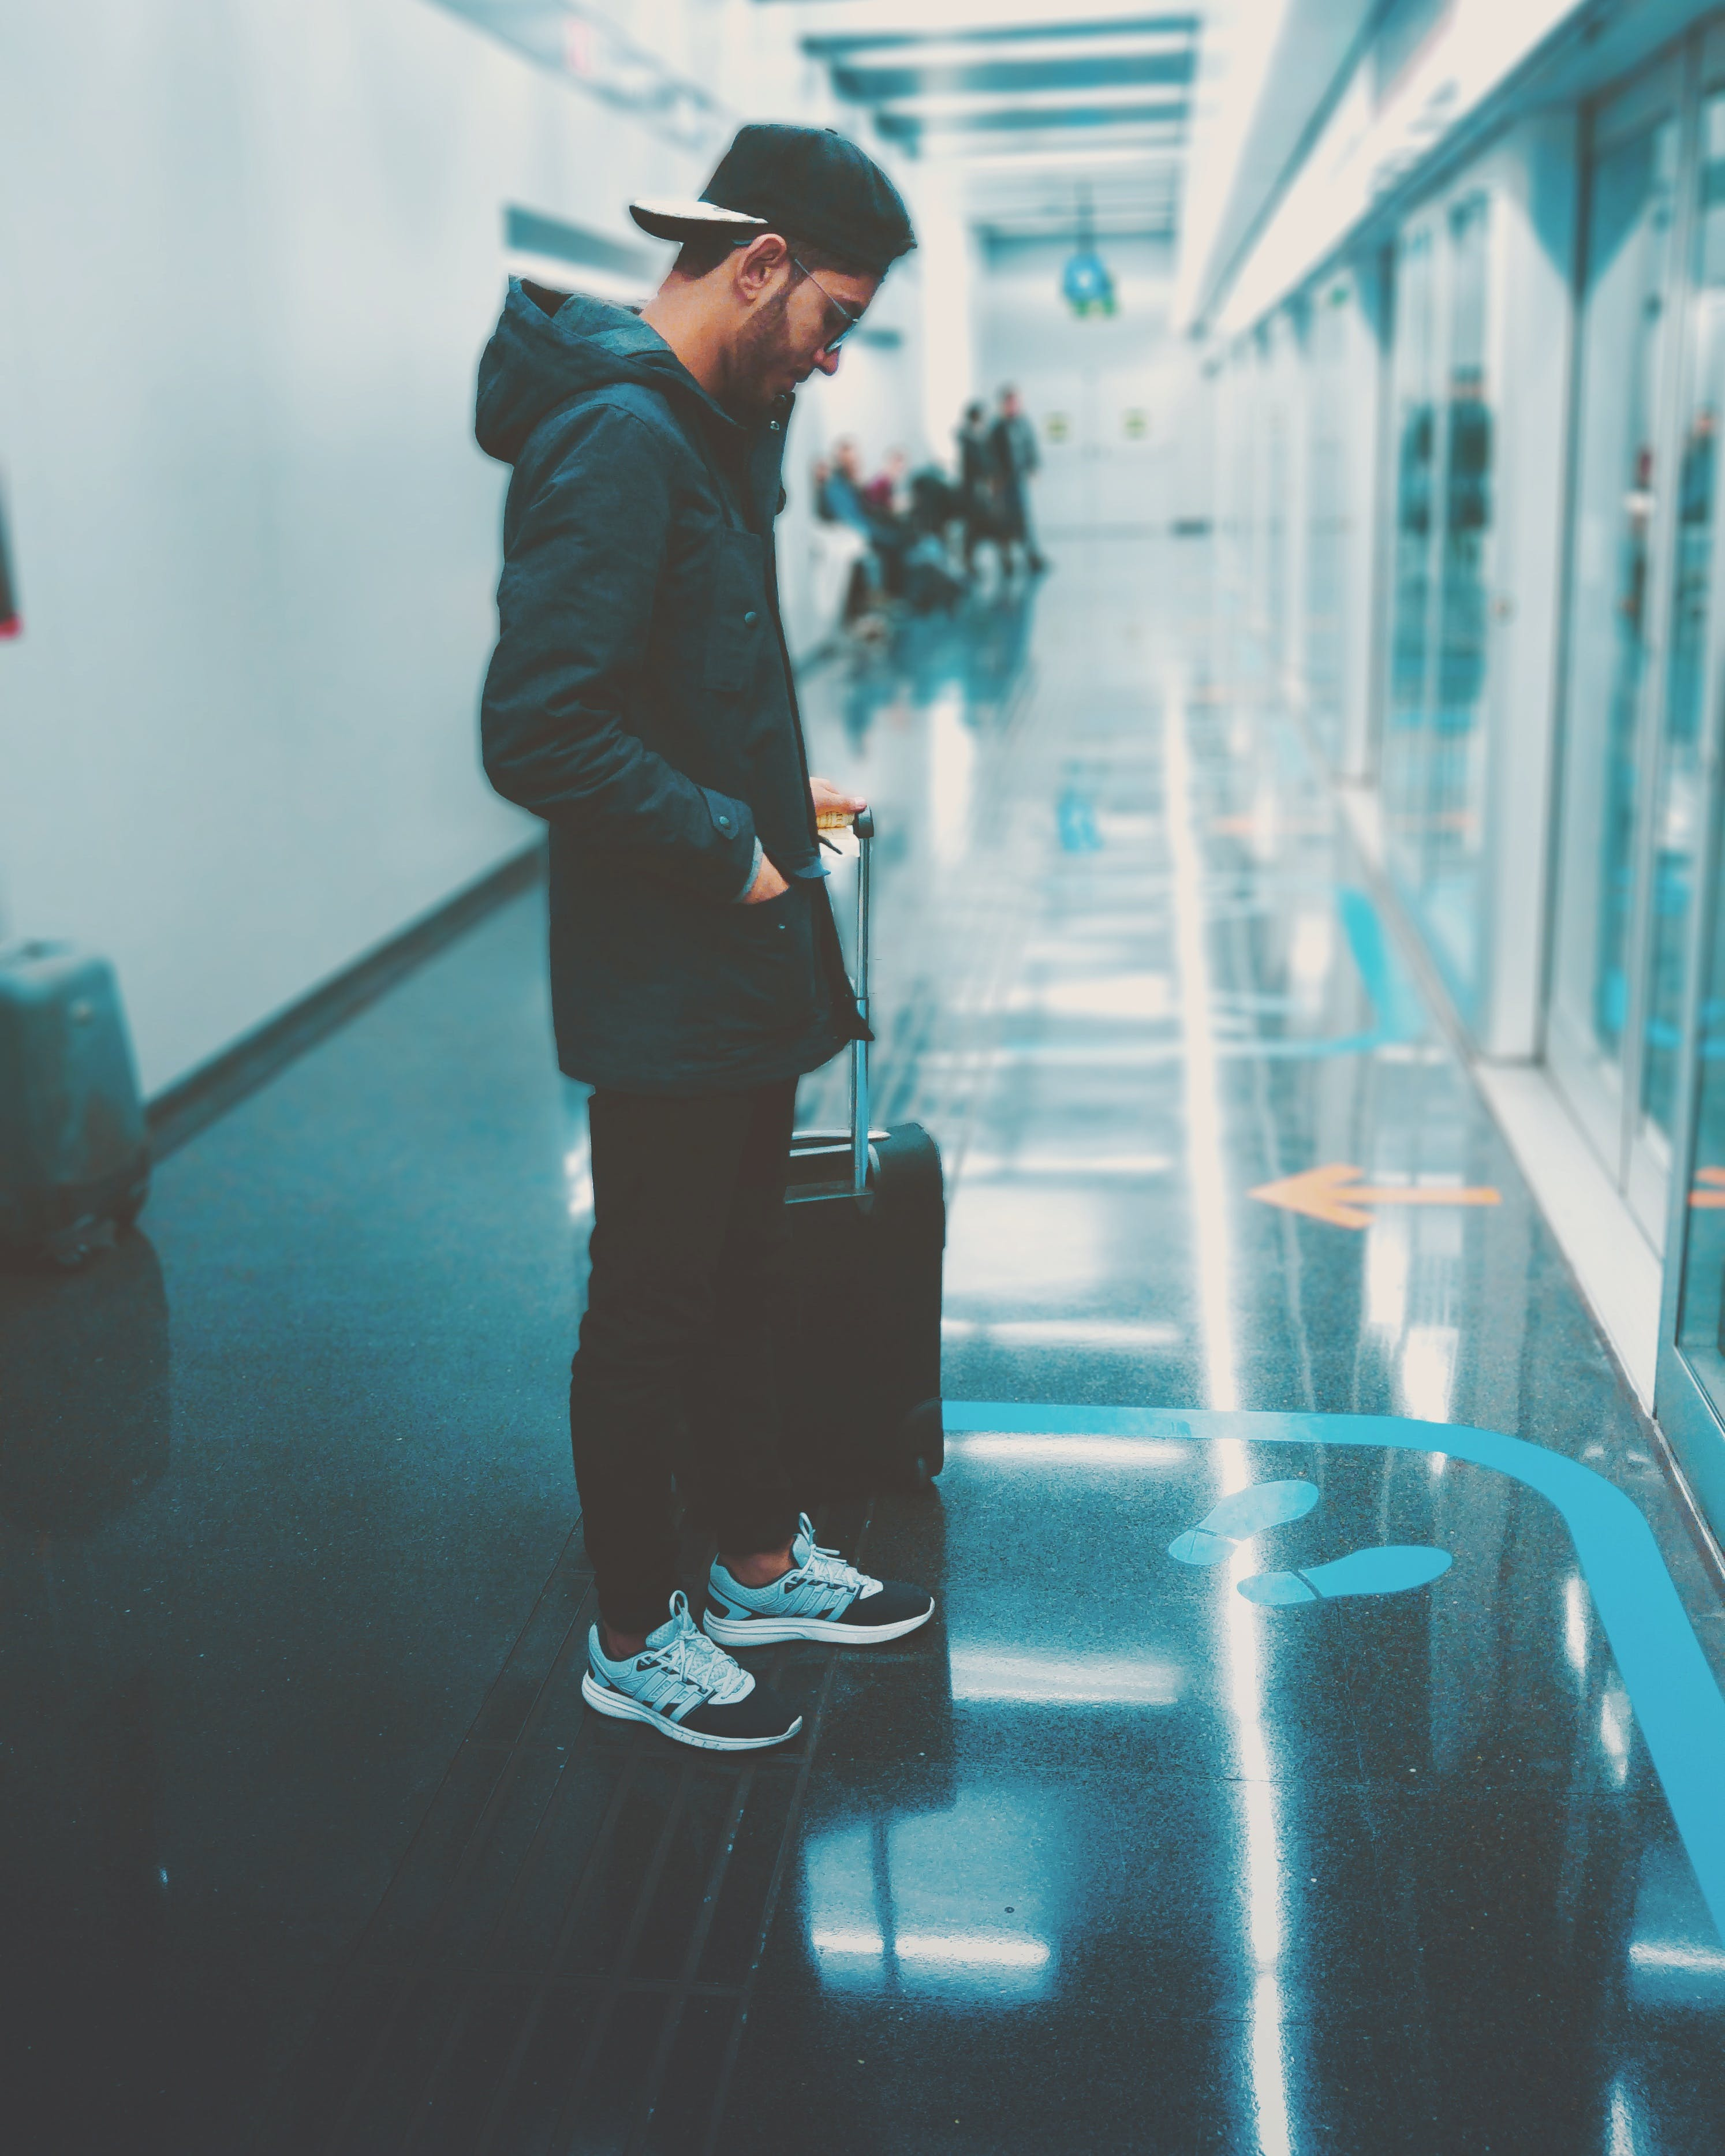 Man Stands Front of Glass Panel While Holding Luggage